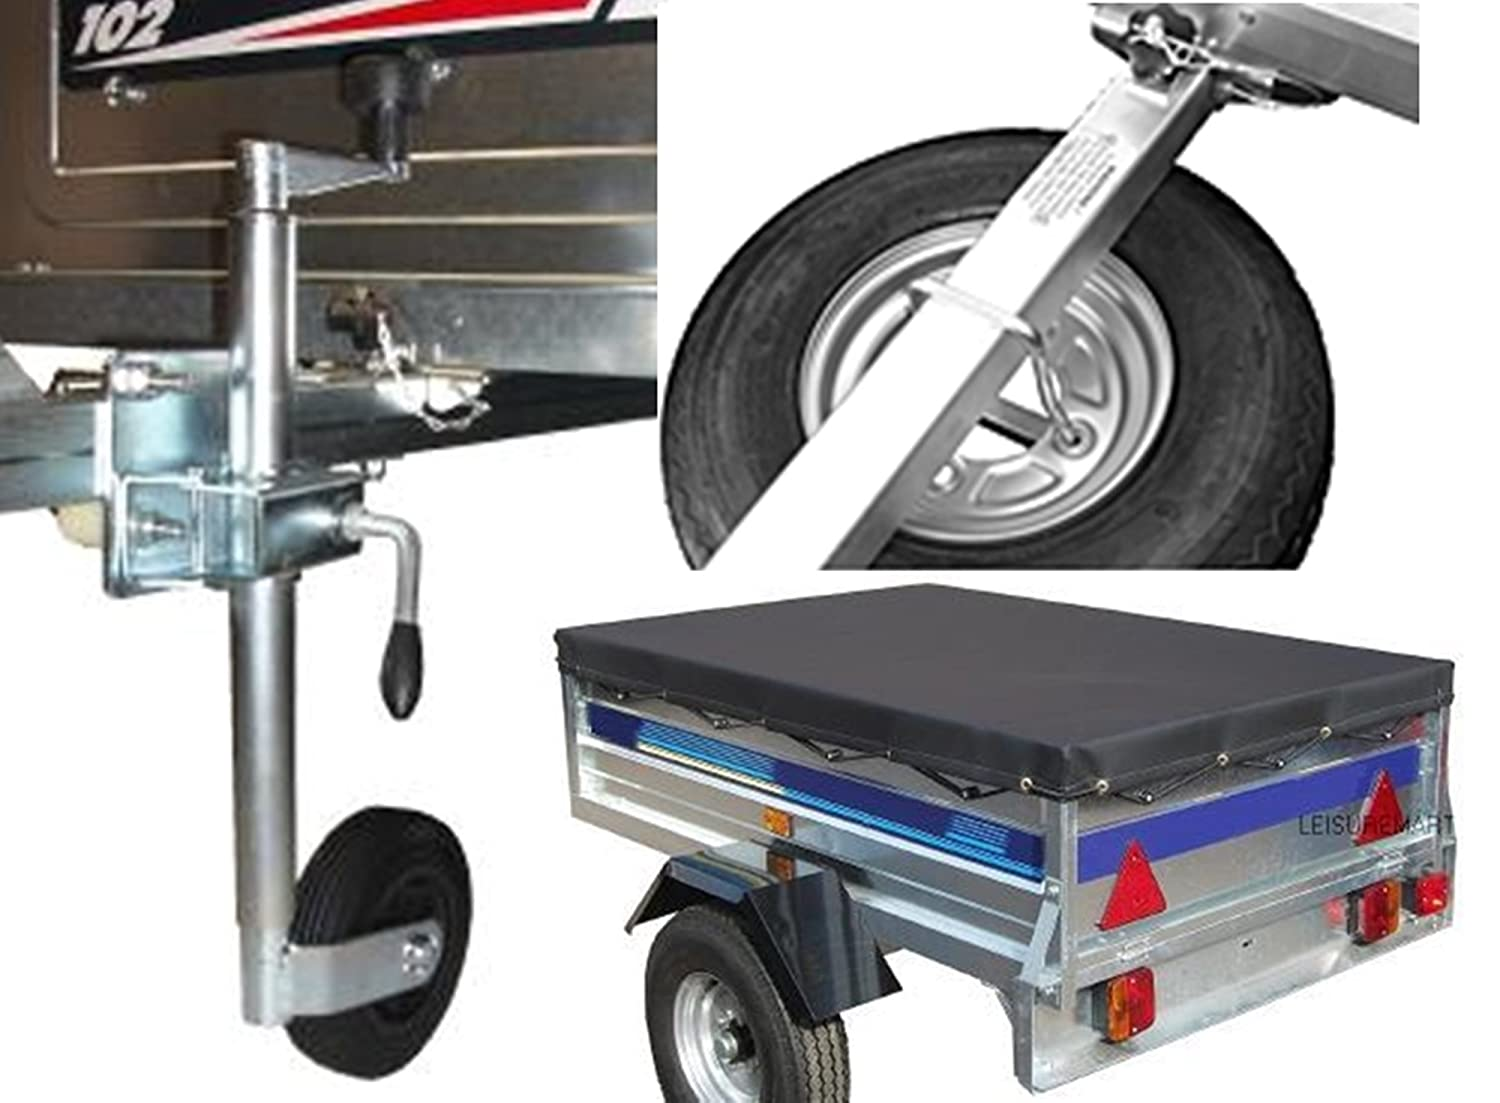 jockey wheel and fixing kit Trailer cover and spare wheel carrier Pt no Accessory kit for Trailer Erde 122 and Daxara 127 includes Spare wheel LMX1441